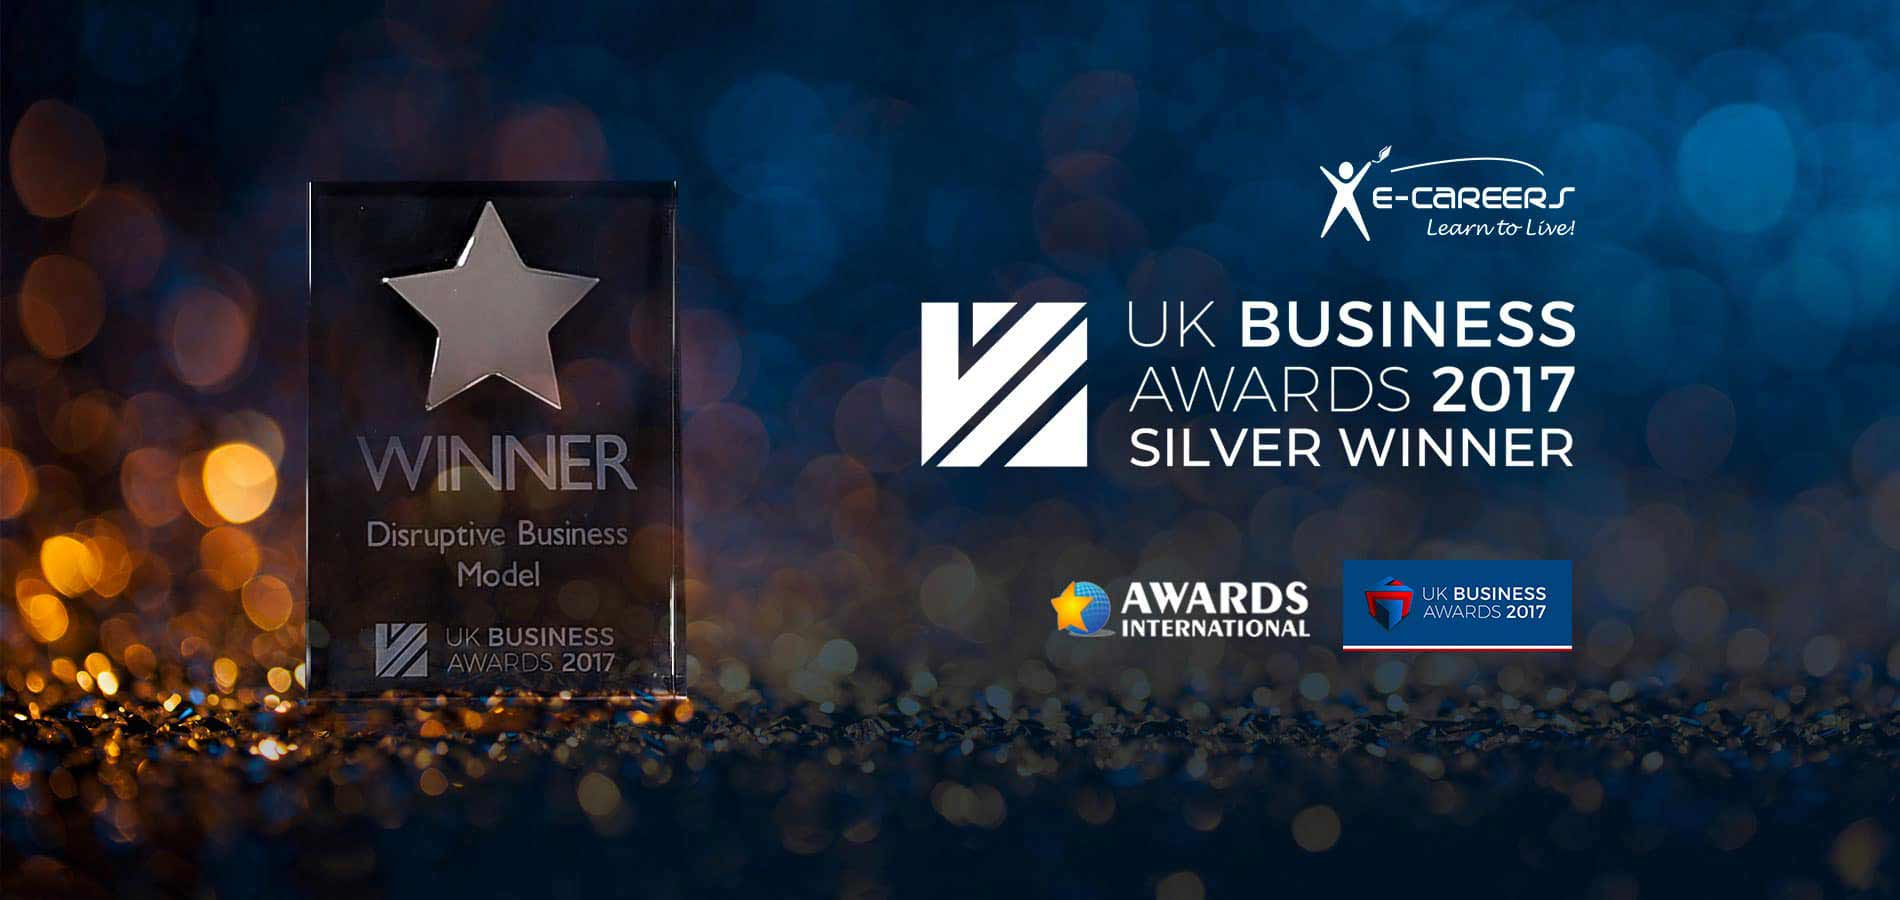 e-Careers recognised with National Business Award